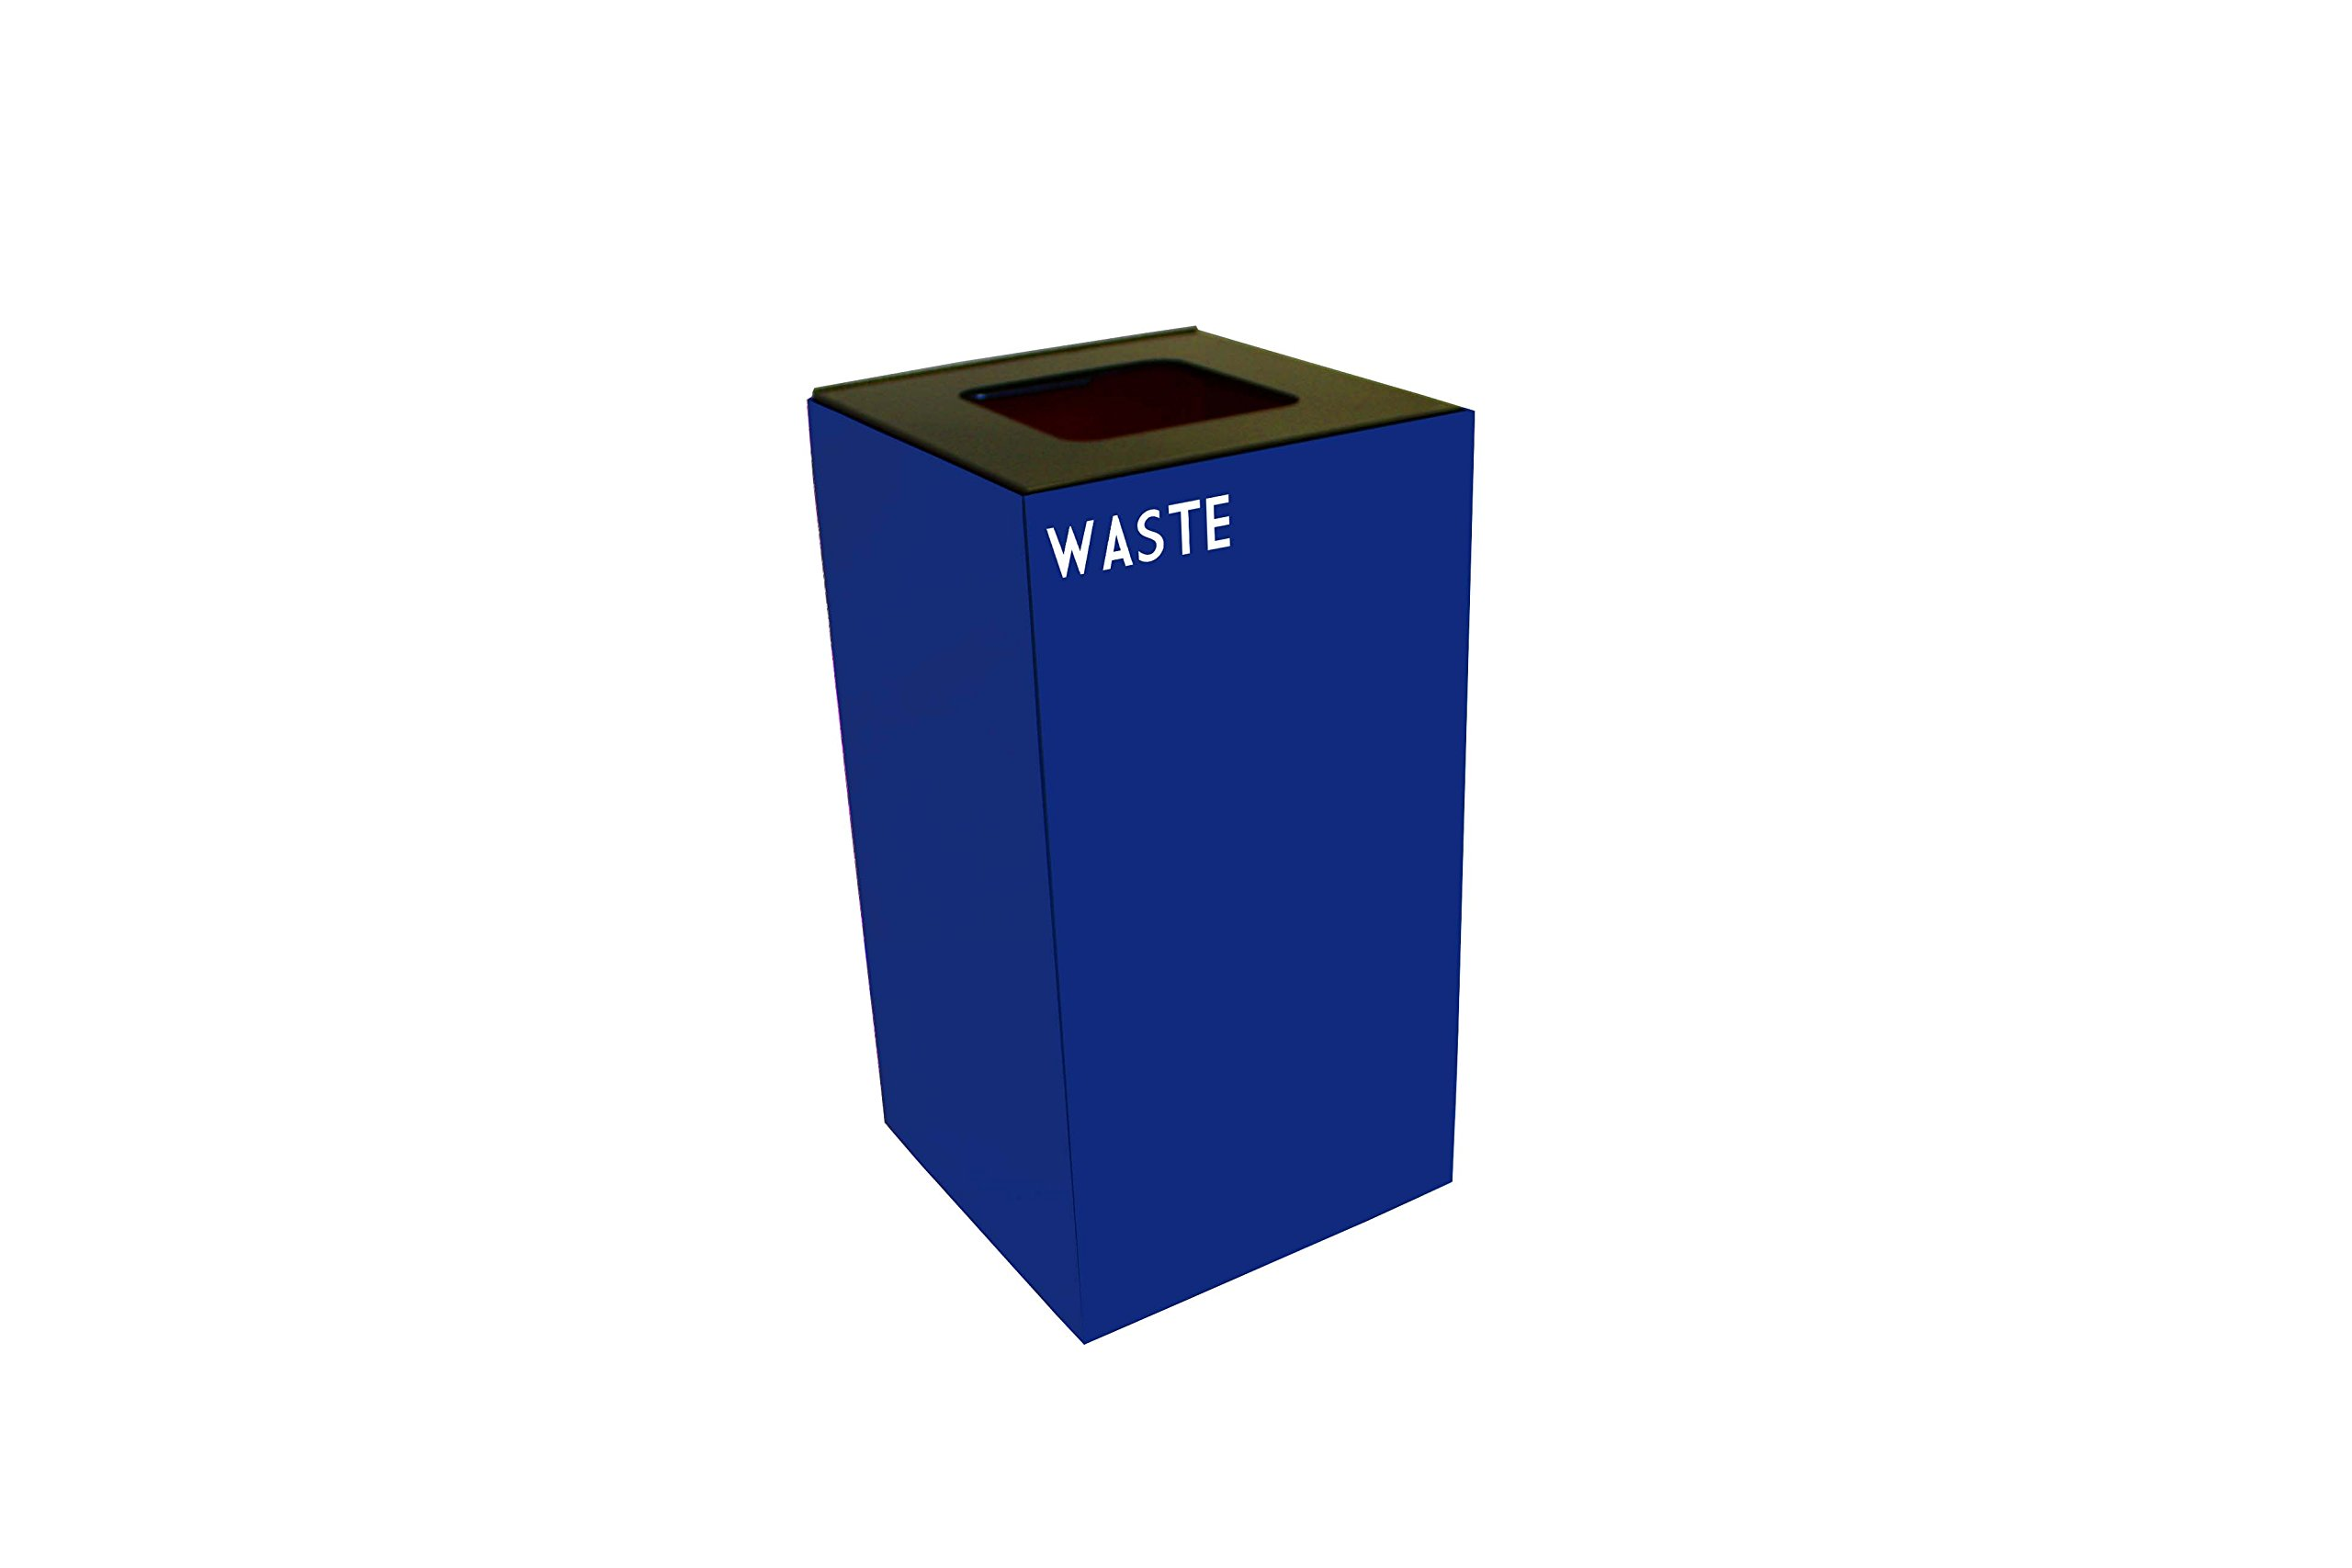 Witt Industries 28GC03-BL GeoCube Recycling Receptacle with Waste Opening, Steel, 28 gal, Blue by Witt Industries (Image #1)